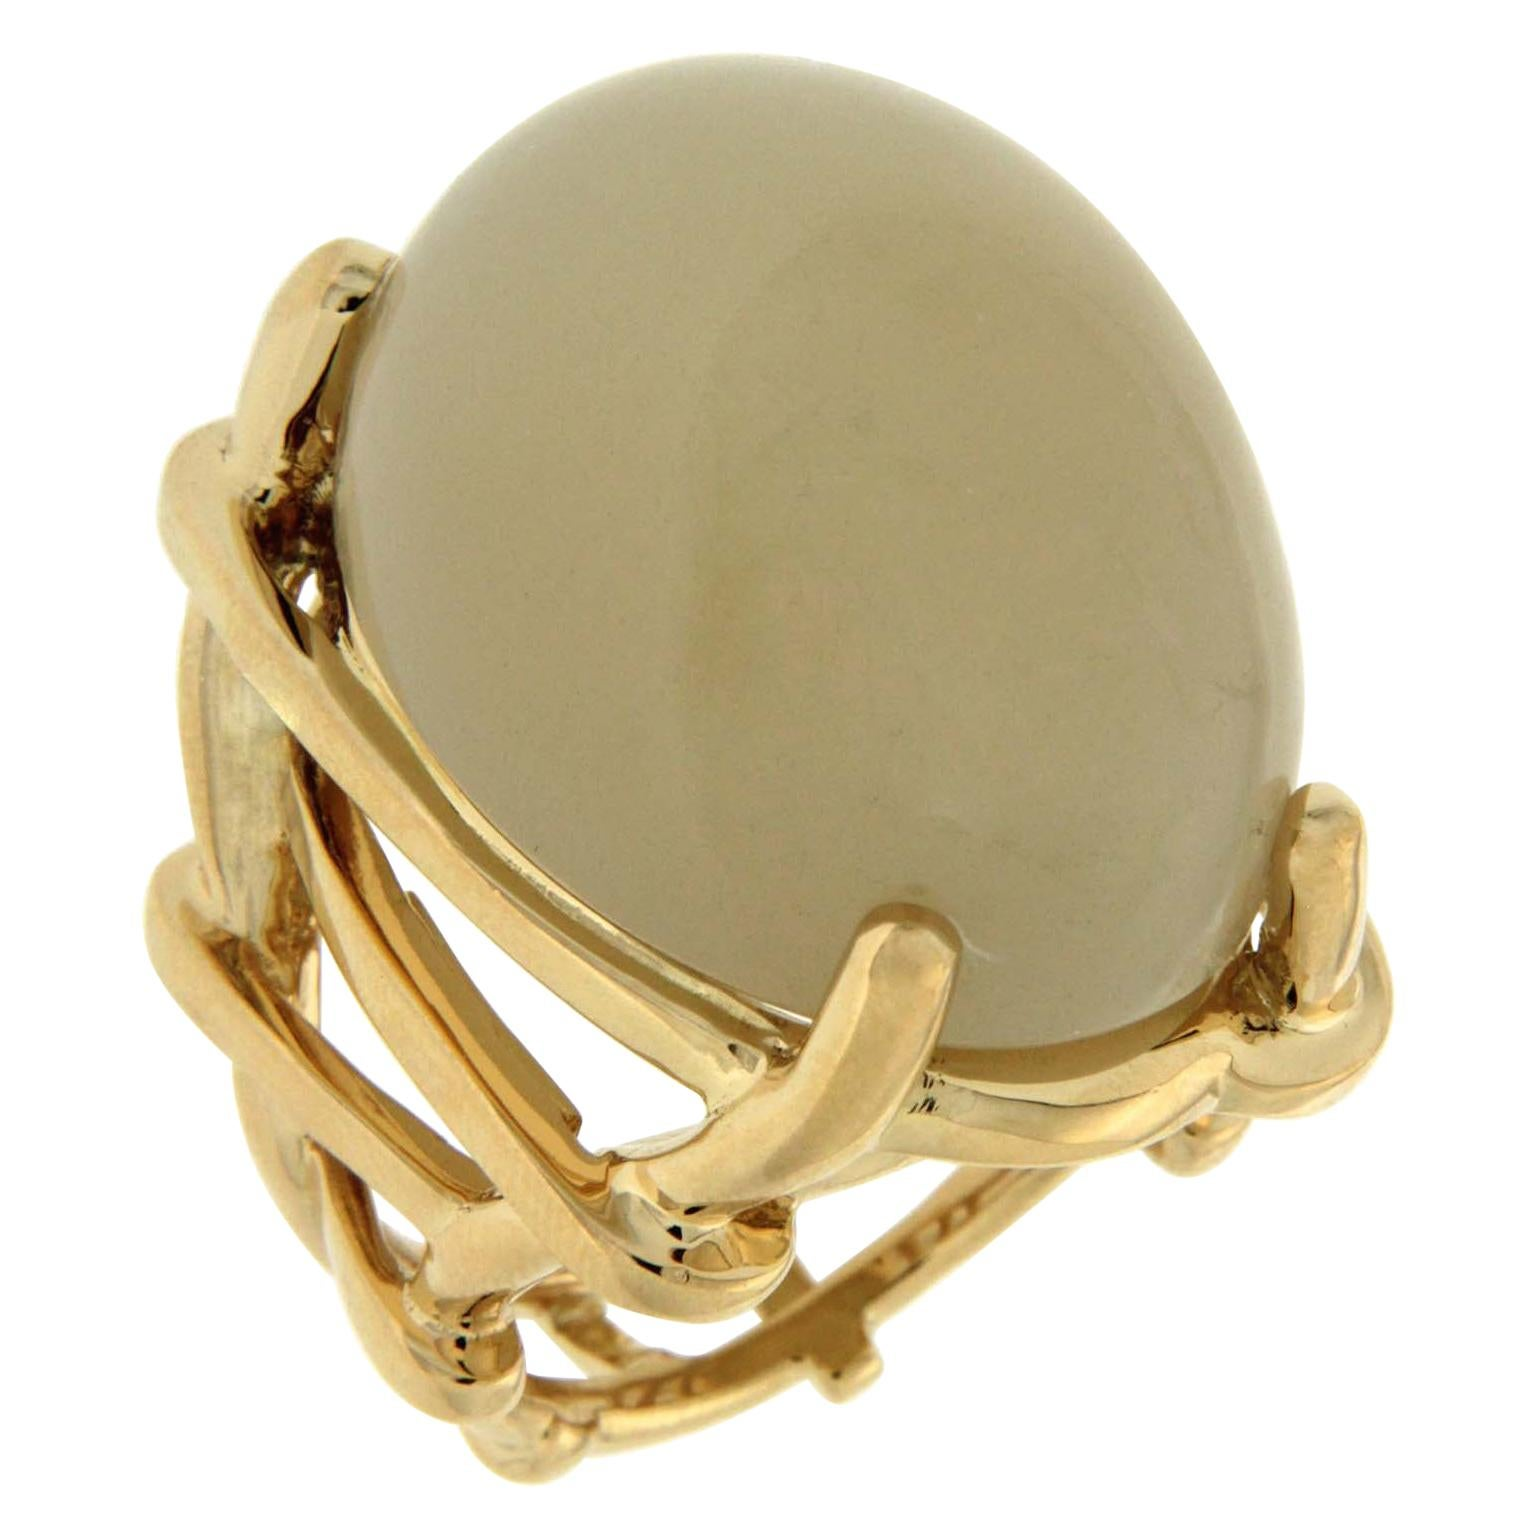 Valentin Magro Oval Celadon Green Moonstone Cabochon Gold Ring